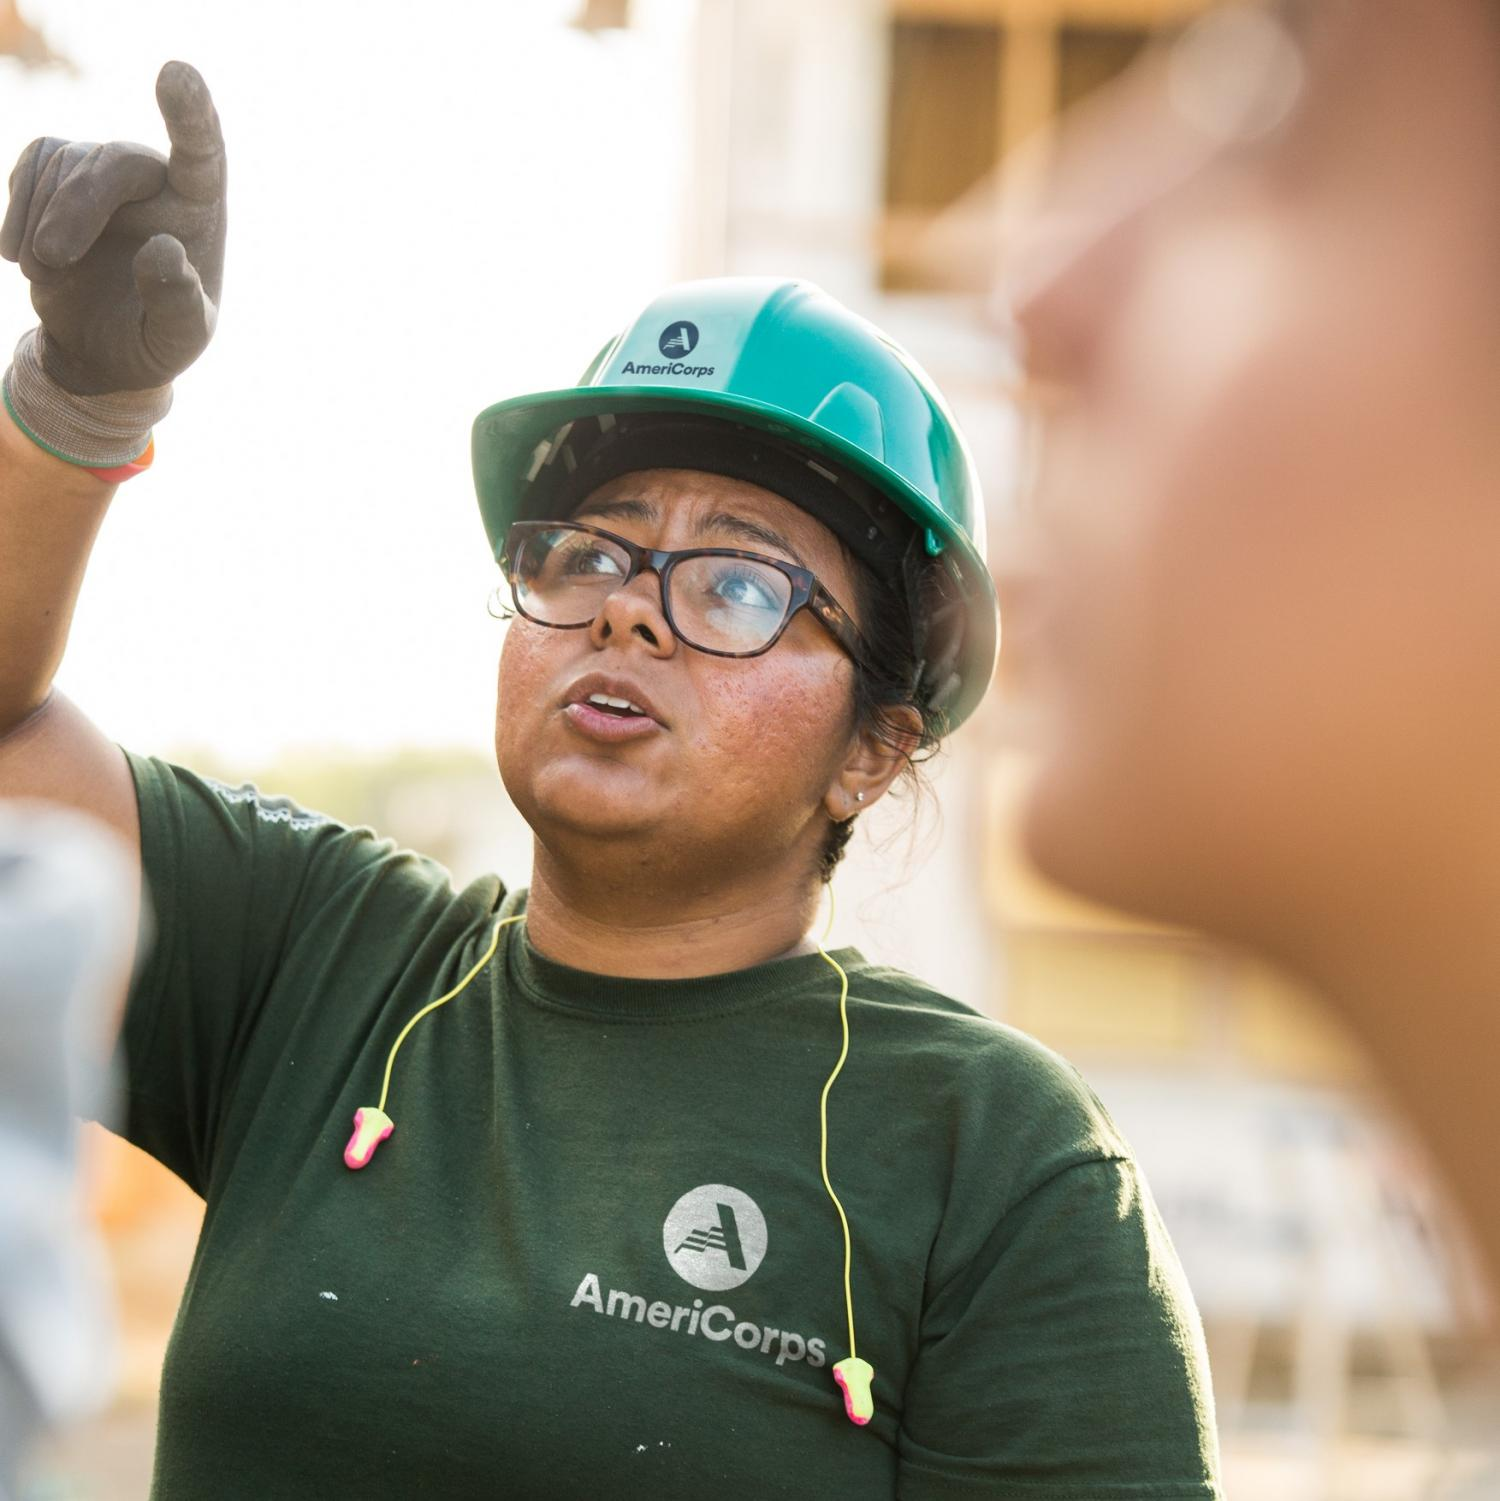 AmeriCorps team leader